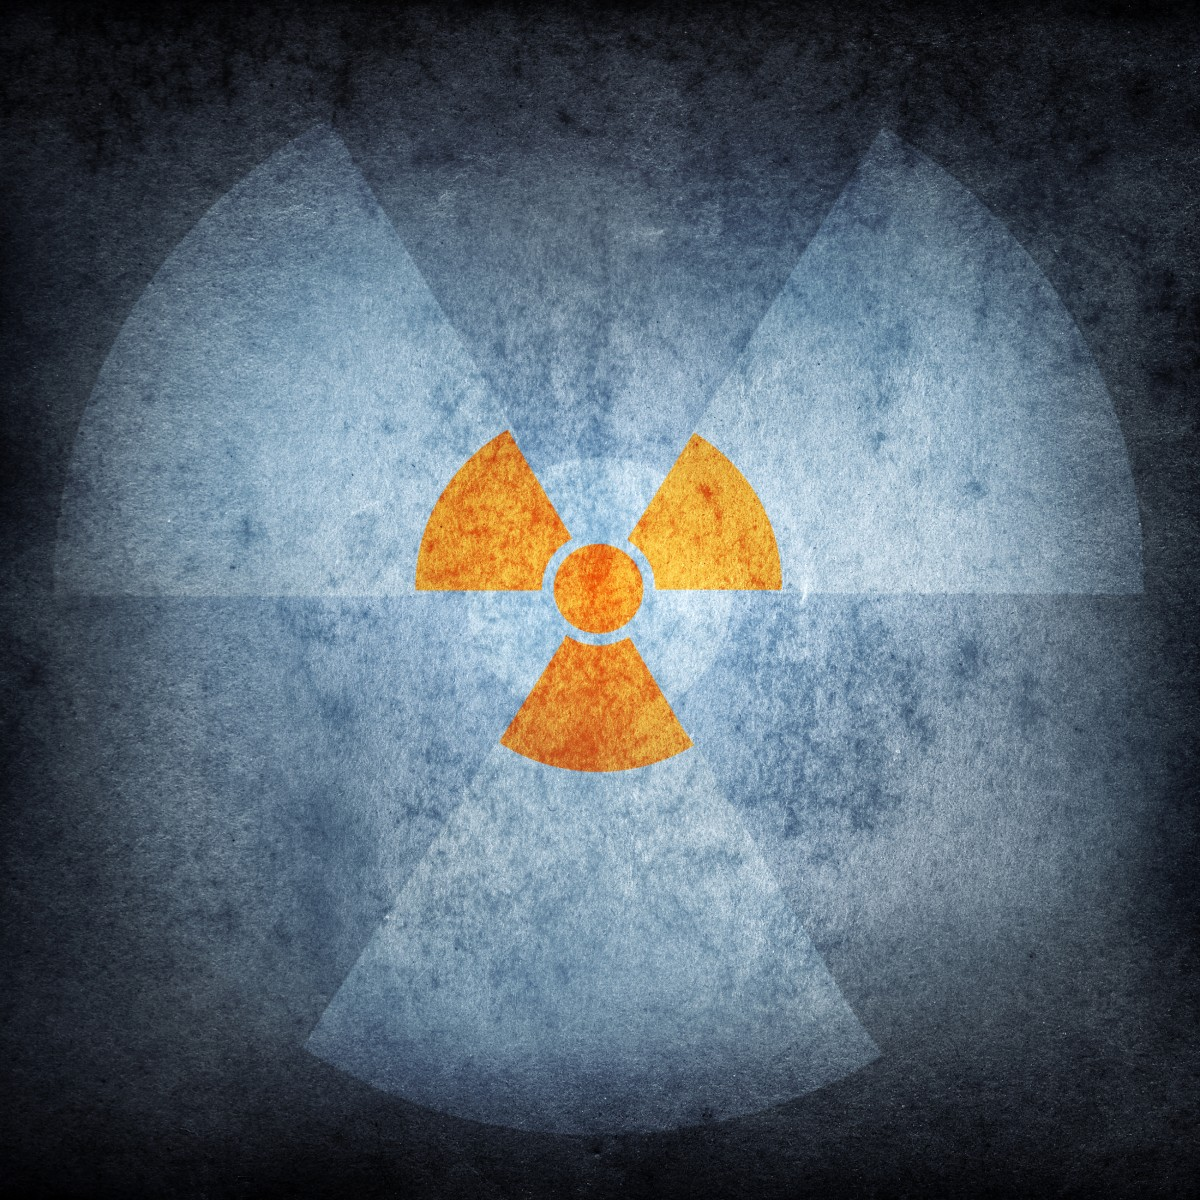 FDA Approves Neupogen As The First Drug for Radiation Therapy-Related Injuries